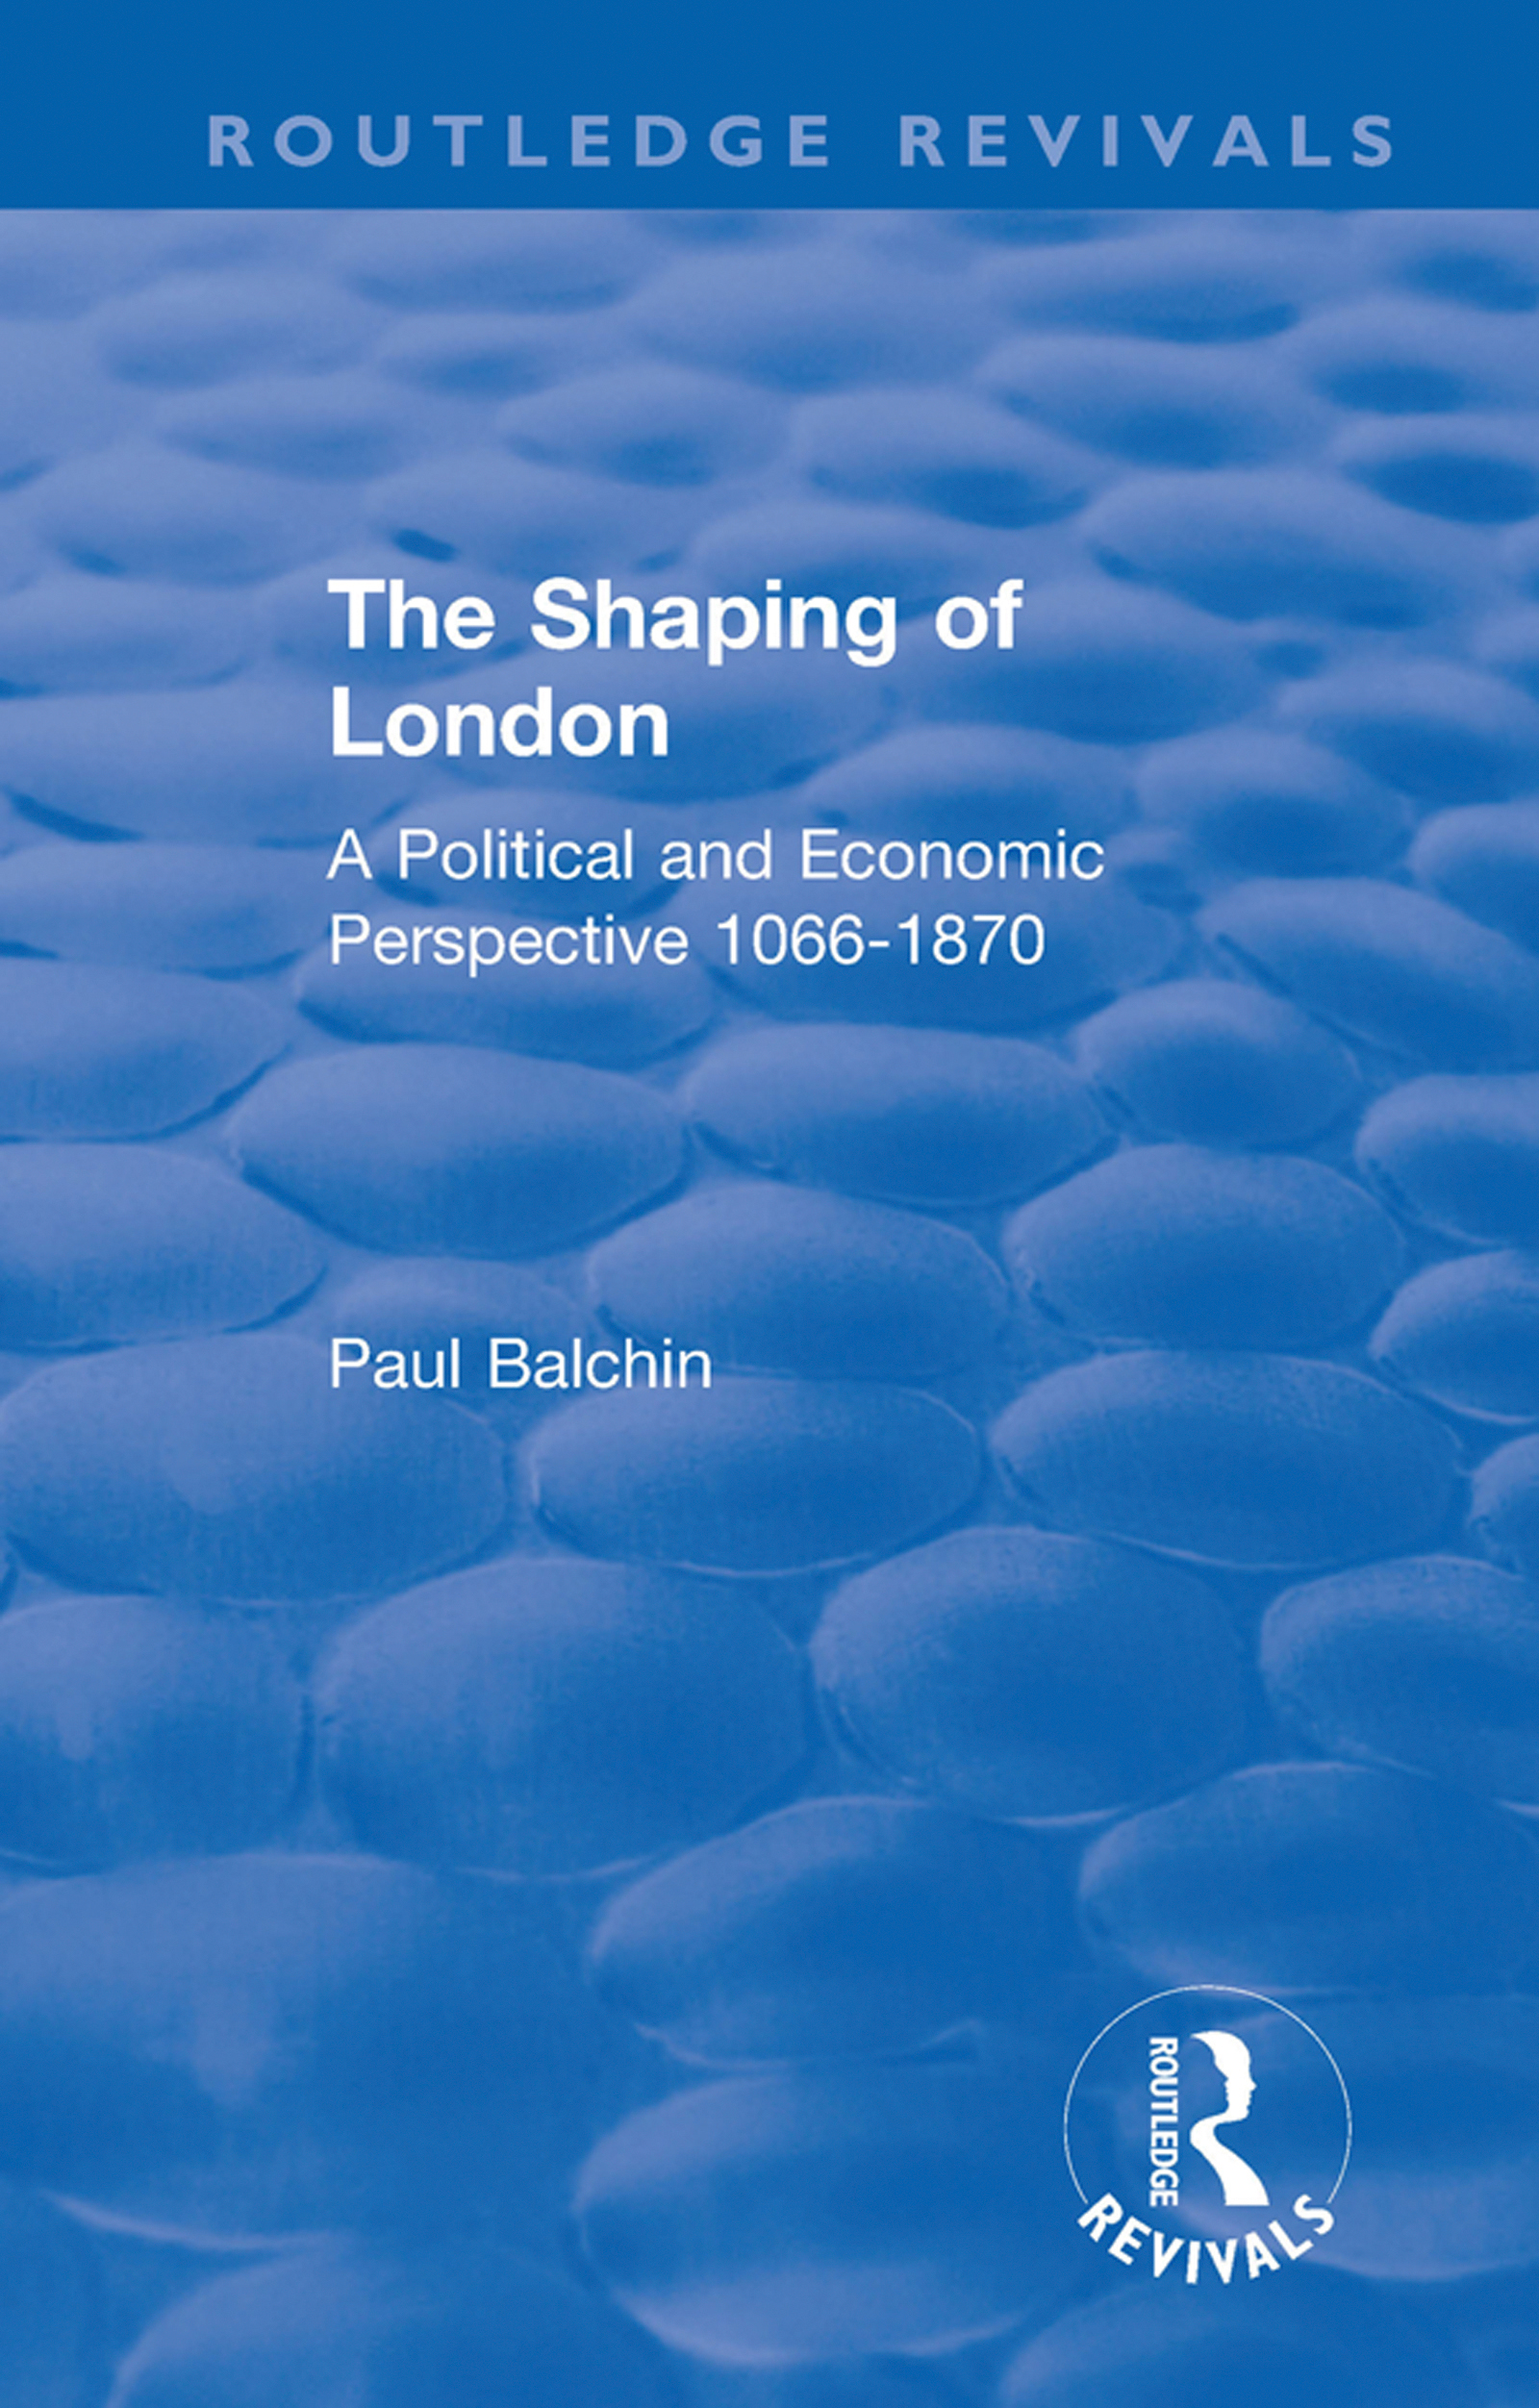 The Shaping of London